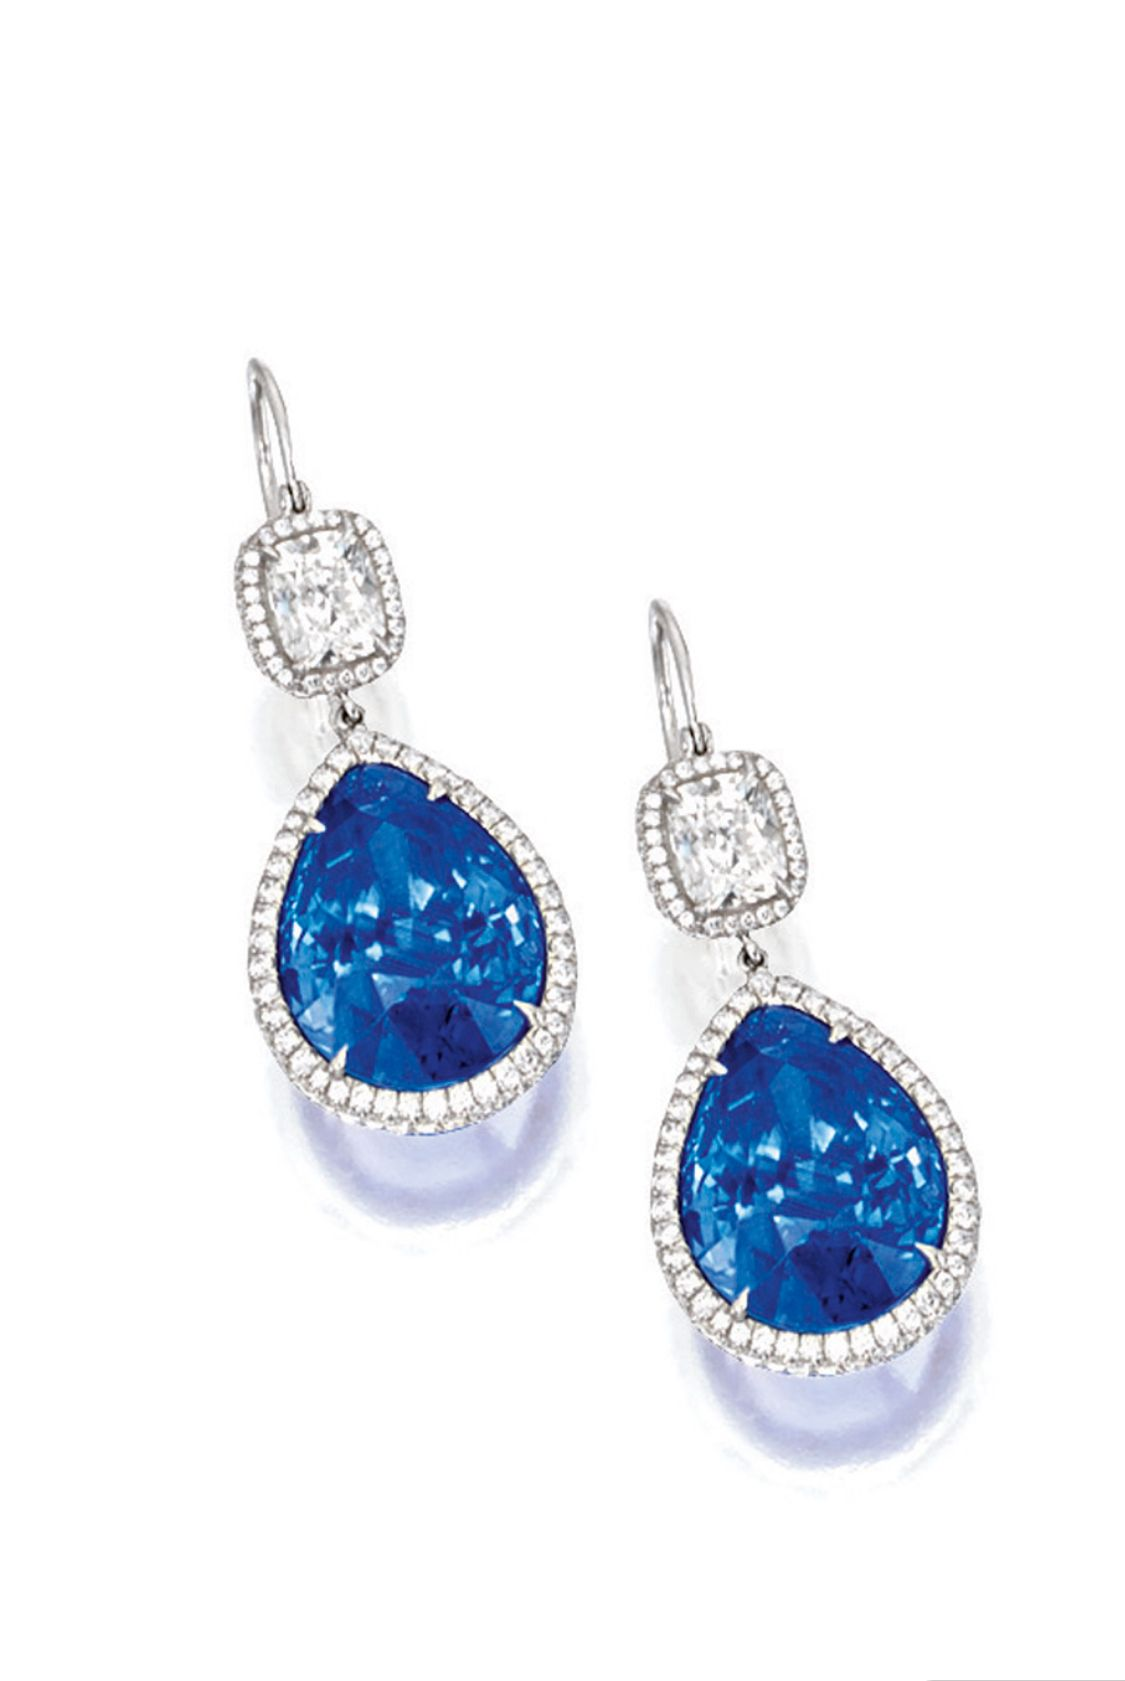 Pear piercing ideas  PAIR OF SAPPHIRE AND DIAMOND PENDENT EARRINGS Each suspending on a